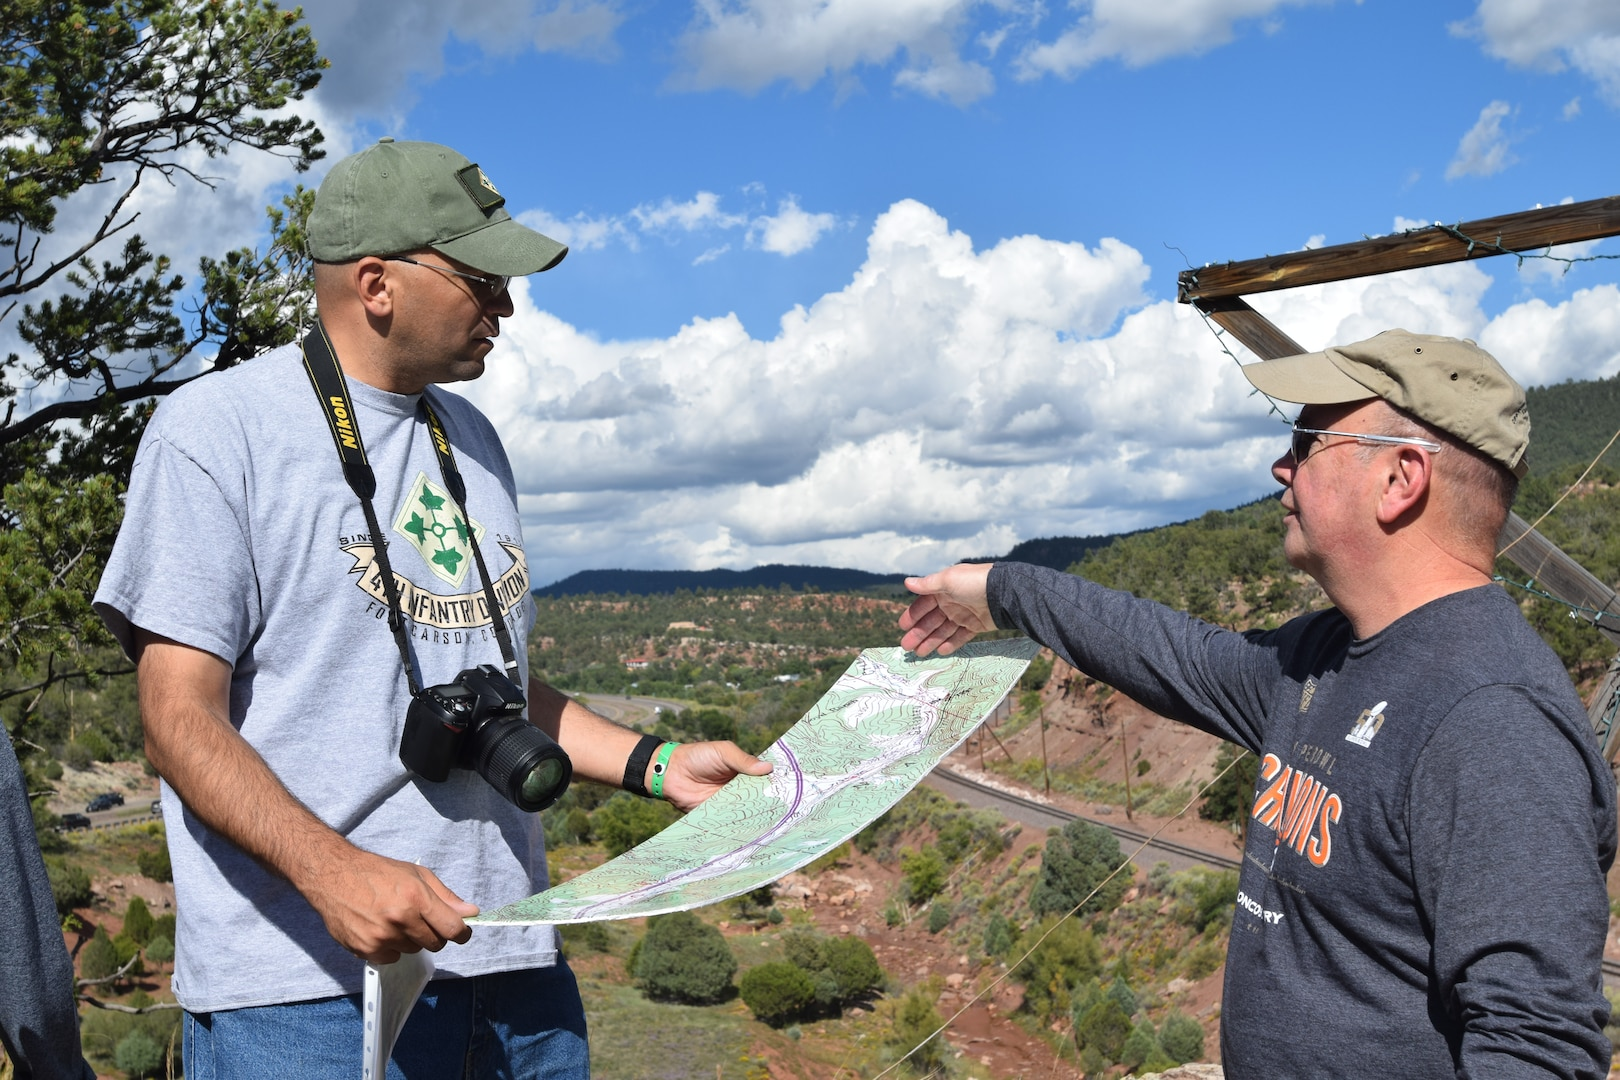 Senior Advisor to the Army National Guard U.S. Army Lt. Col. Shannon Espinoza, left, and Chief Warrant Officer 4 John Mudlo, right, a Colorado Army National Guard Soldier, discuss key aspects of the Apache Canyon terrain during the Colorado National Guard